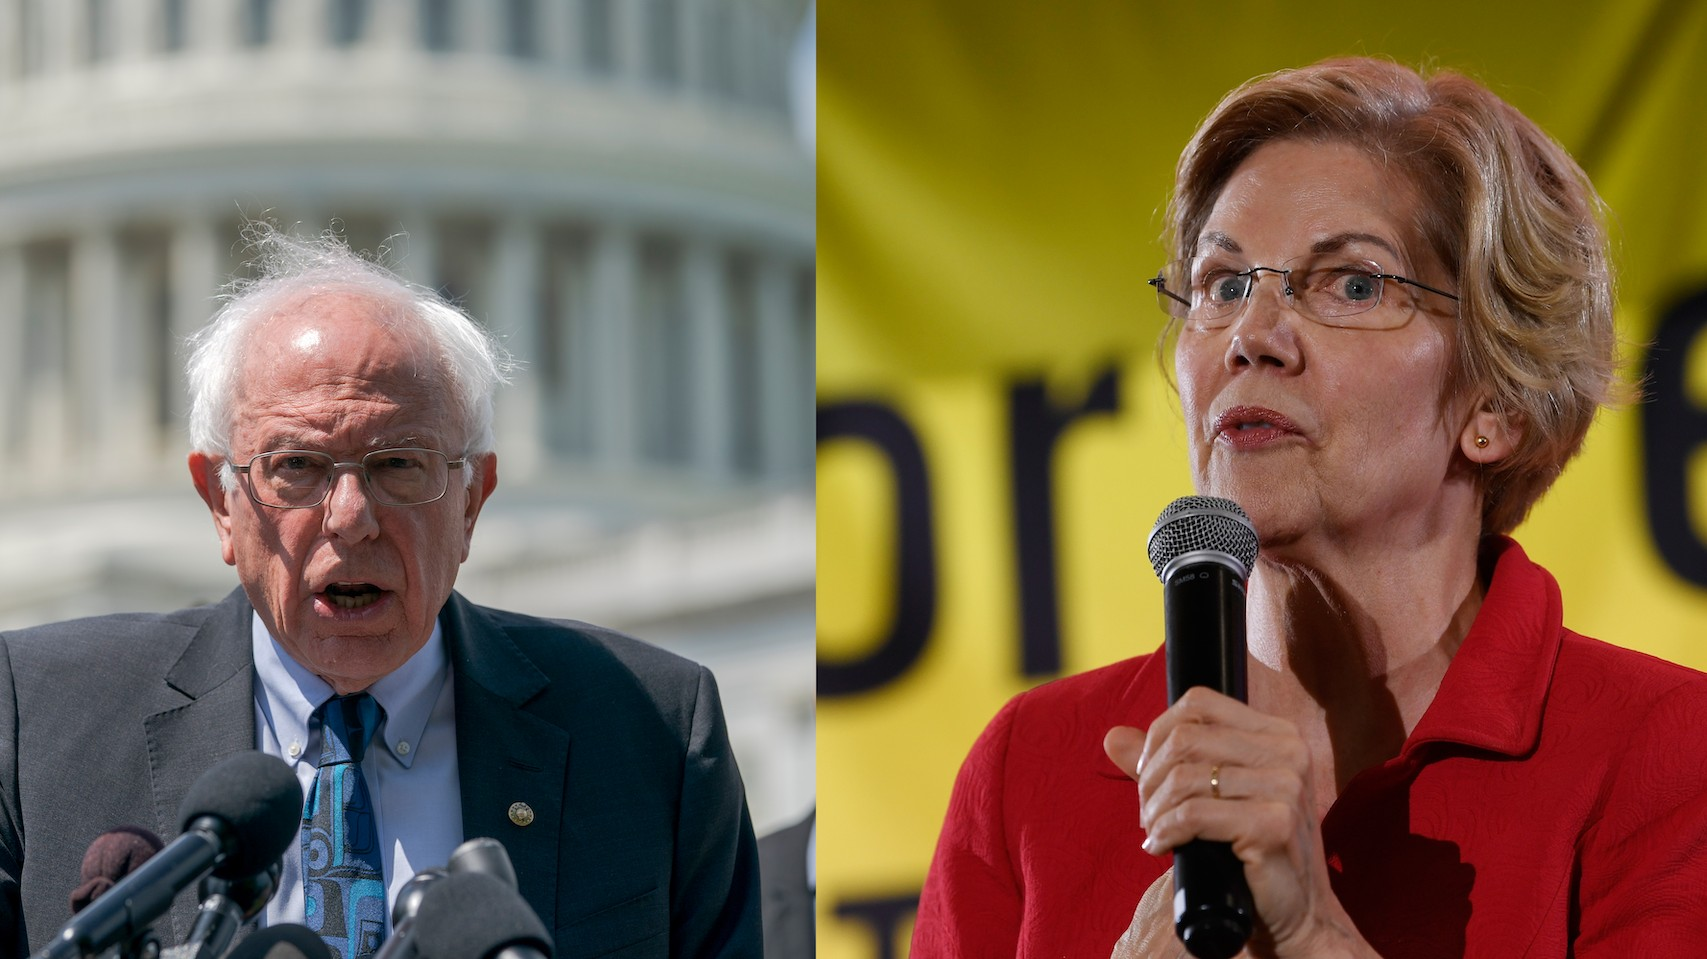 Who's More Left?: 4 Key Differences Between Bernie and Warren